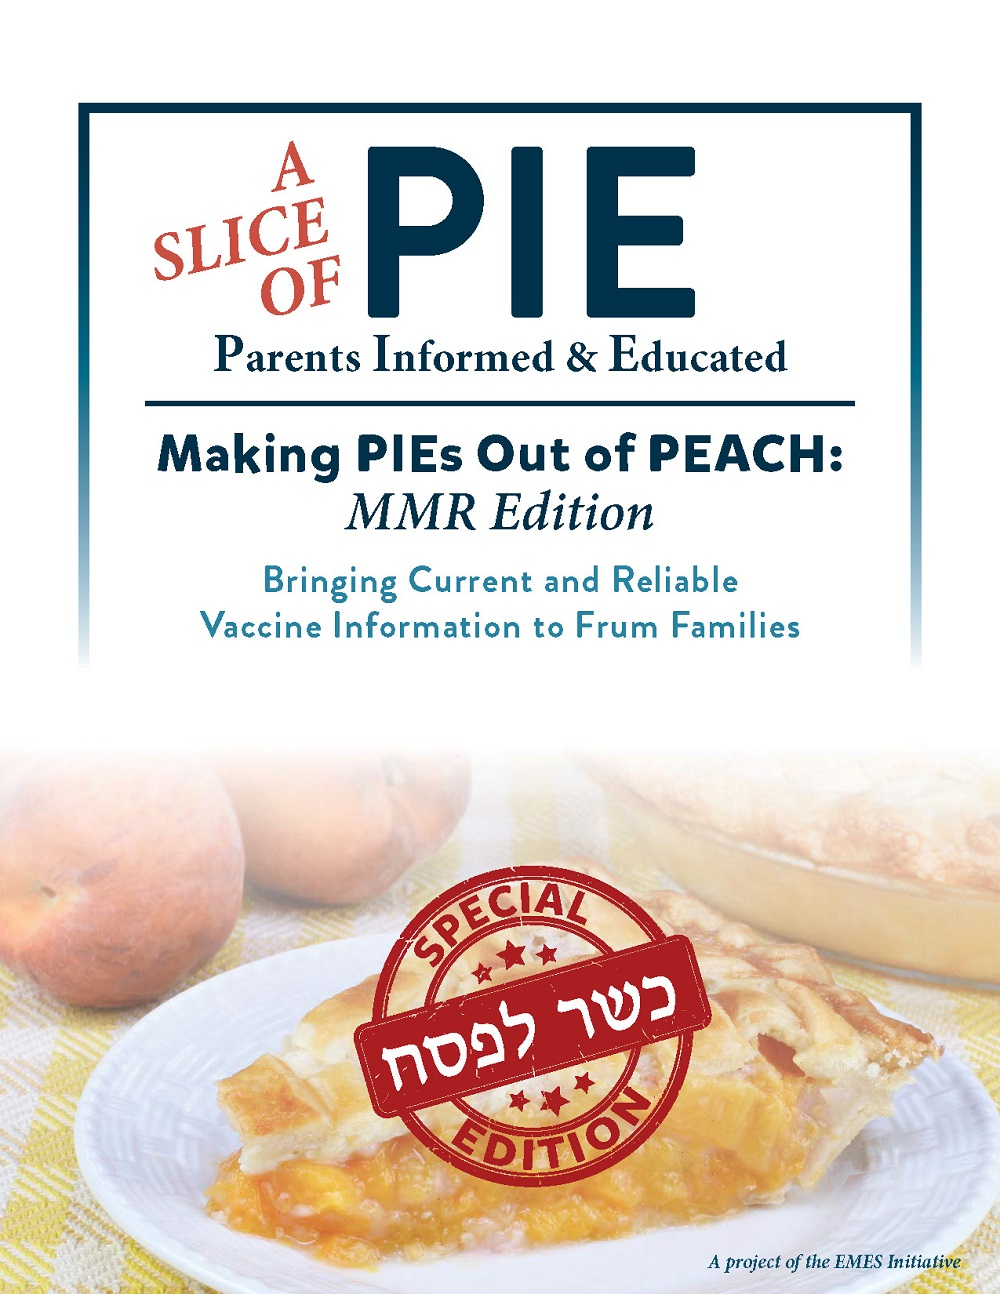 Slice of Pie Informational Brochure